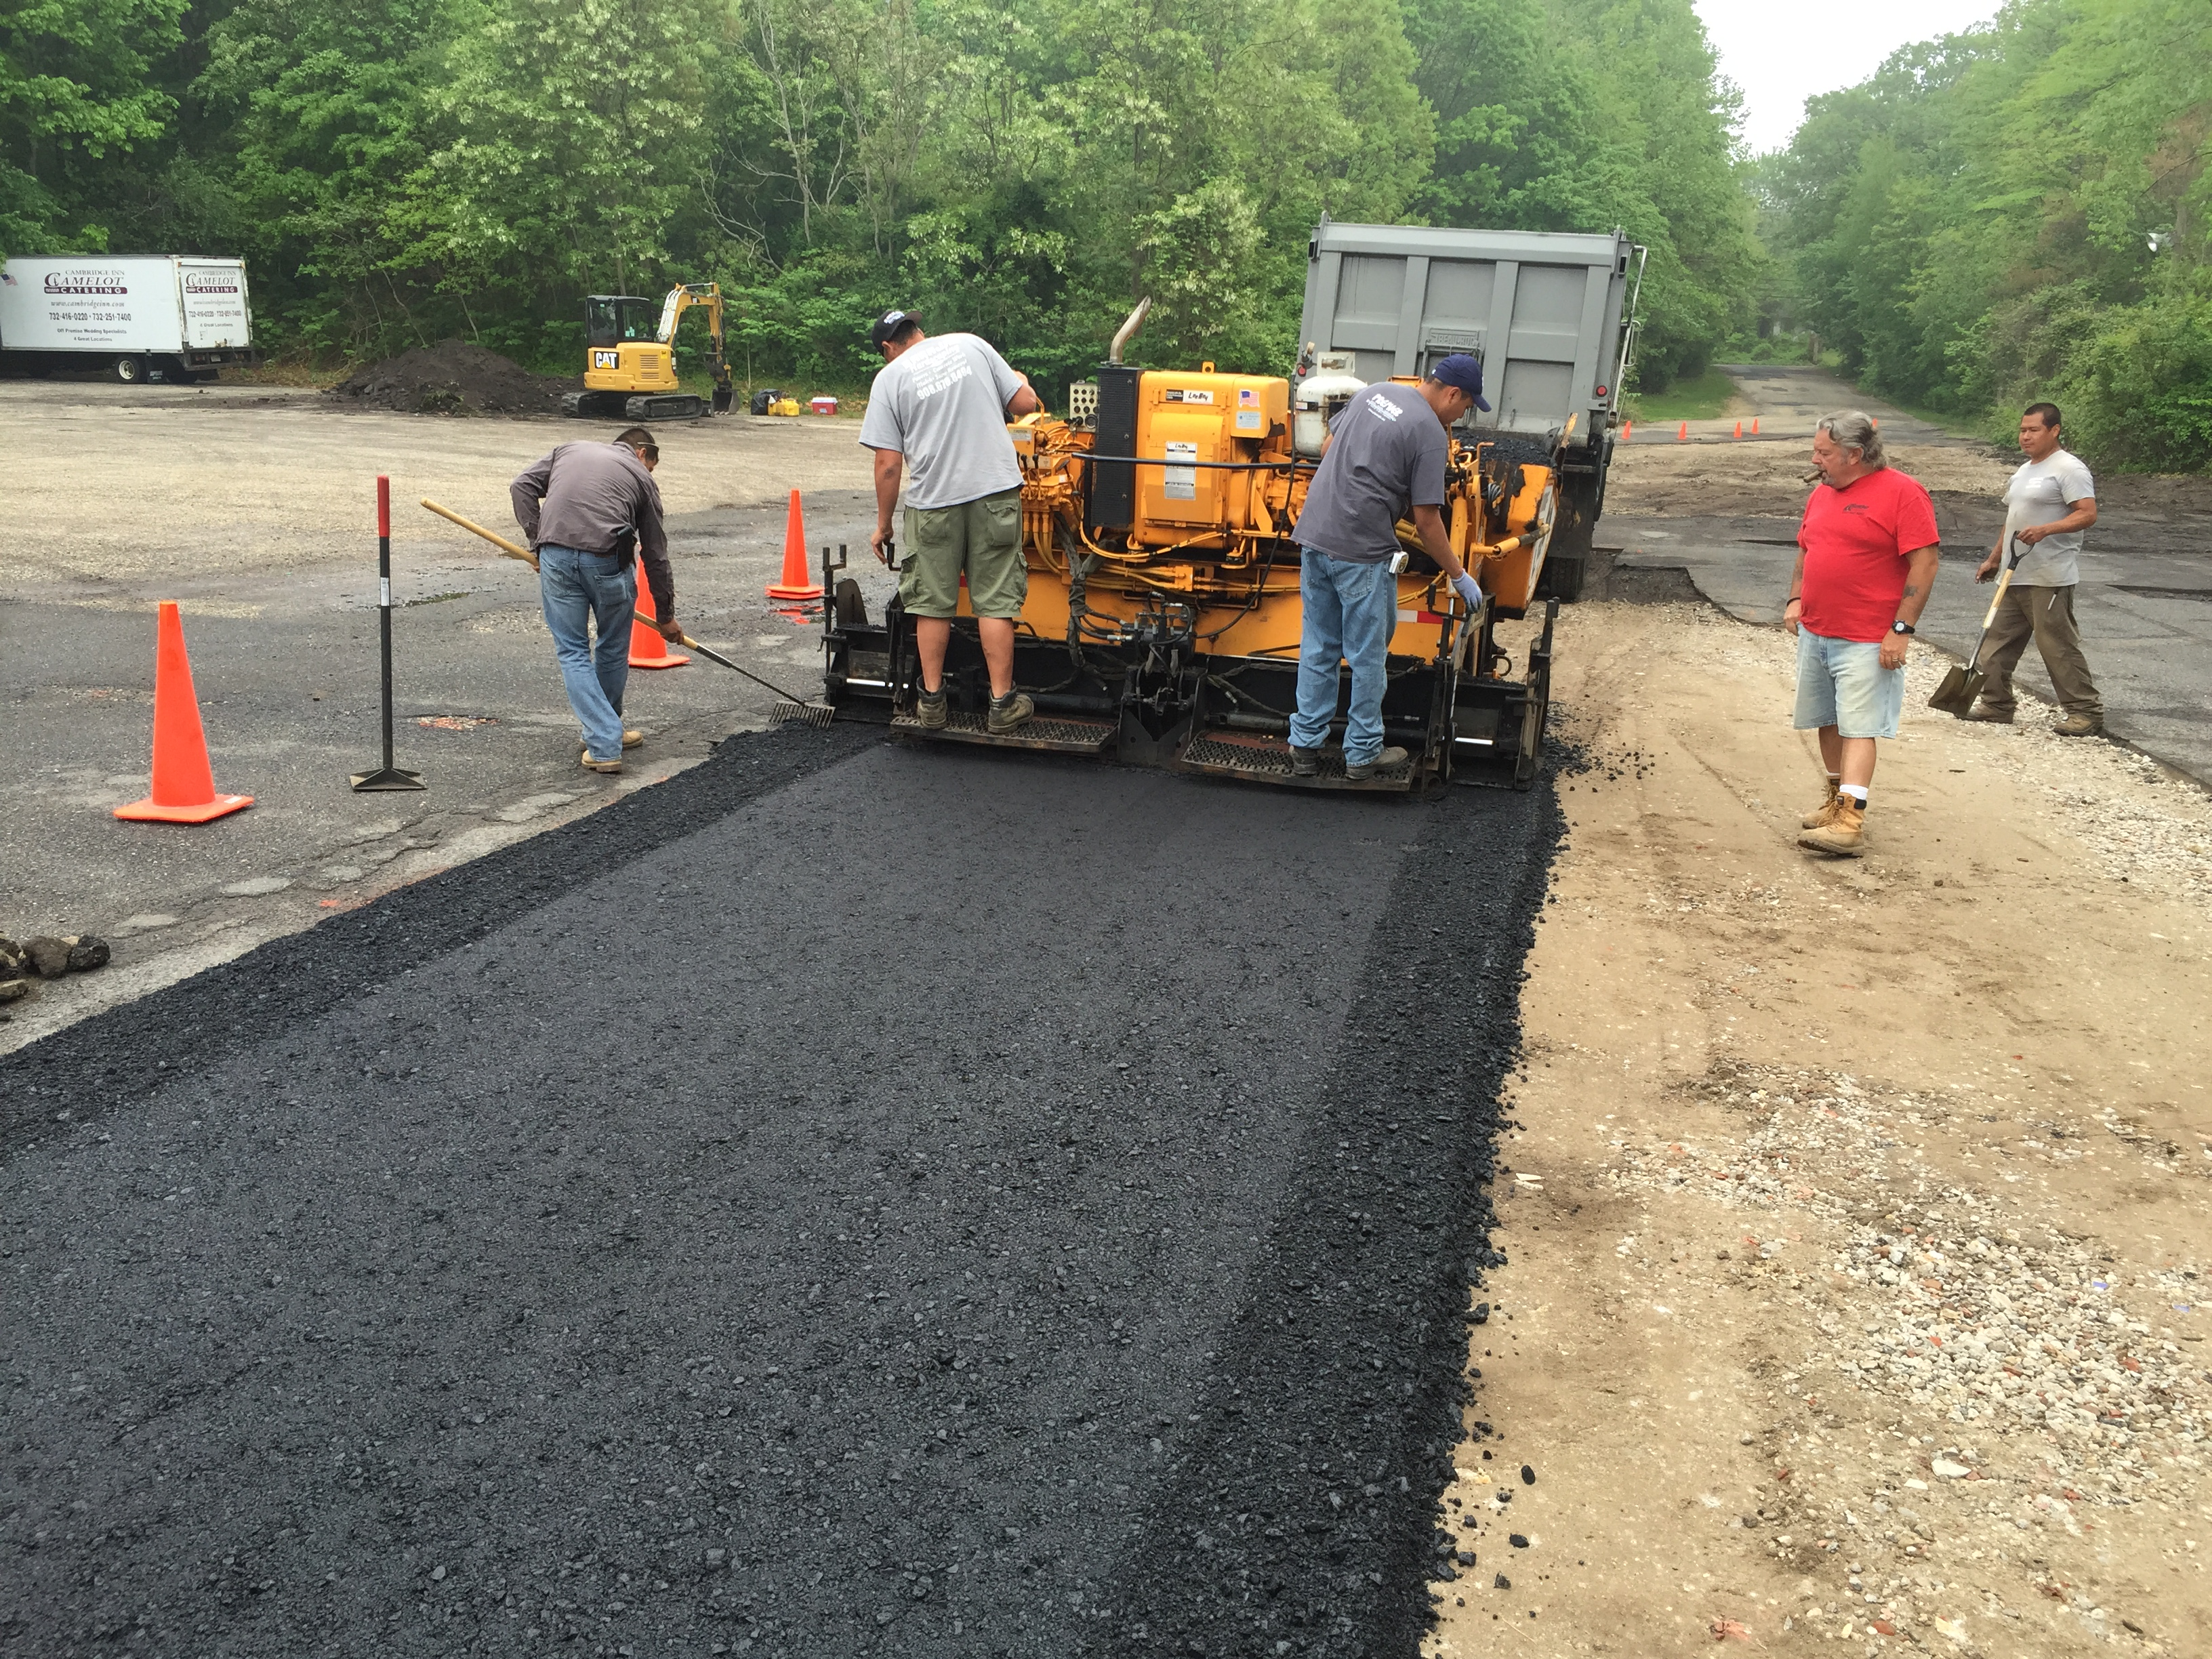 New jersey ocean county beachwood - Our Paving Hardscape And Stone Services